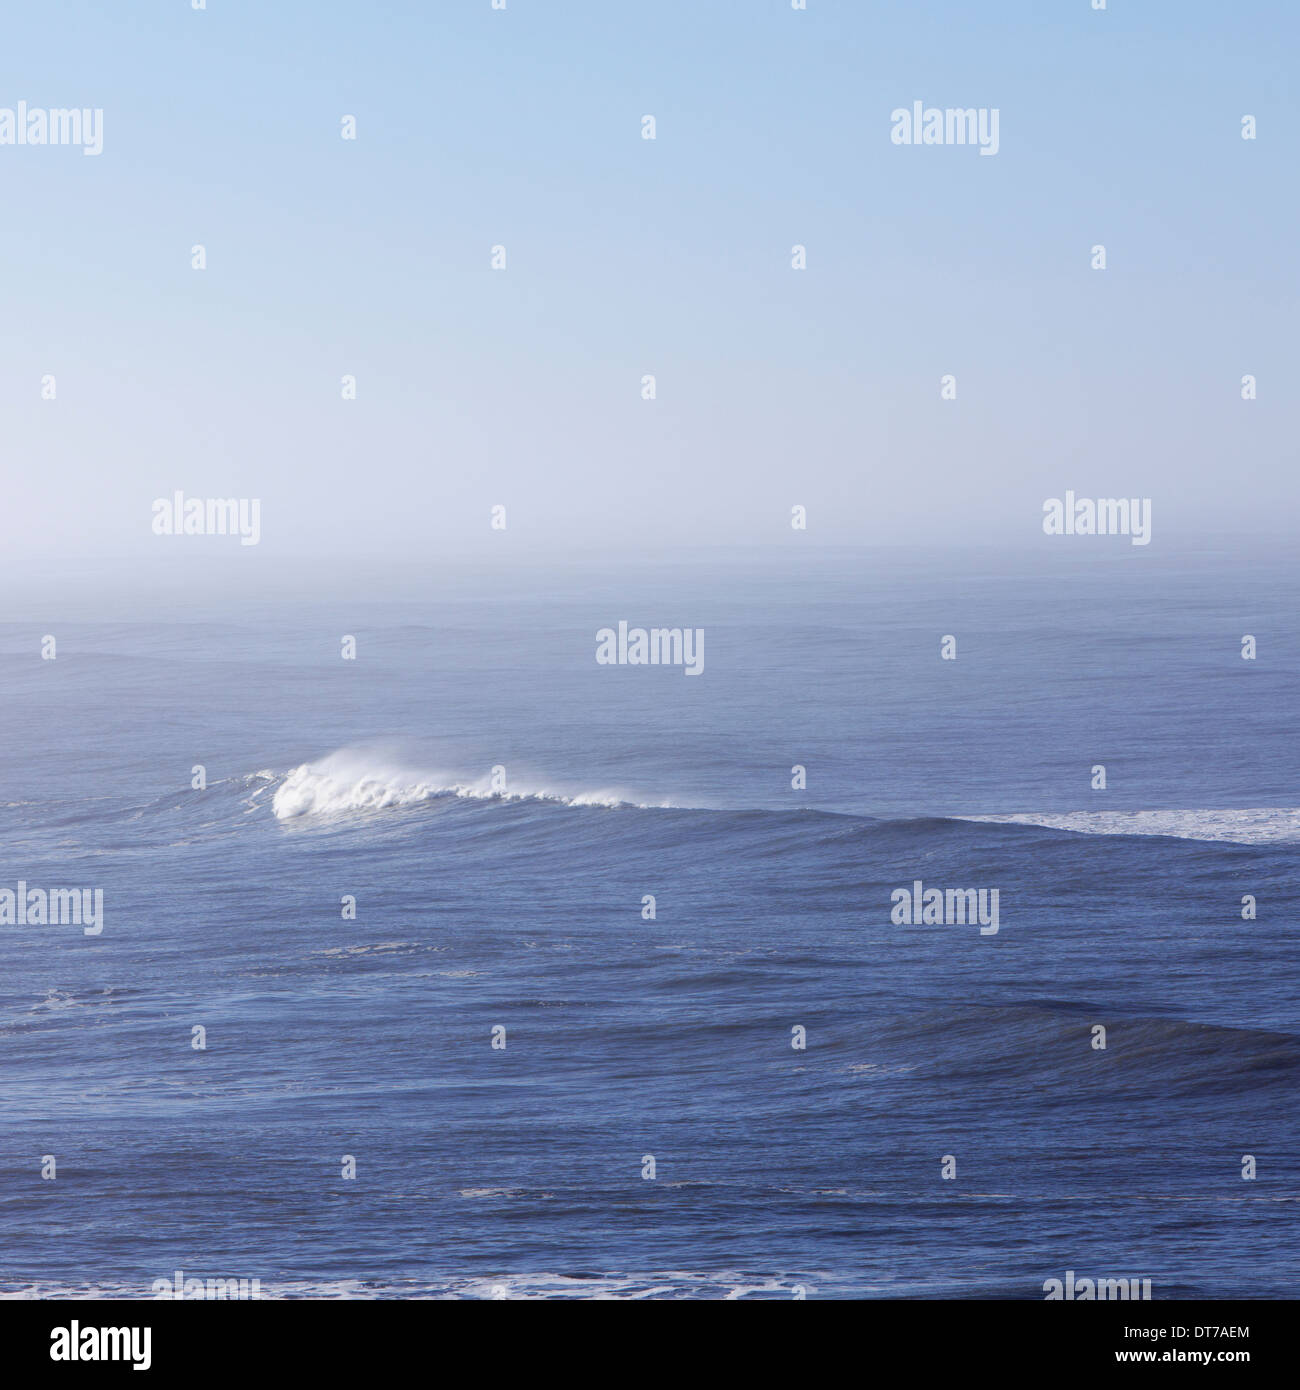 A view over the ocean and a wave with a developing white crest Olympic national park Washington USA - Stock Image